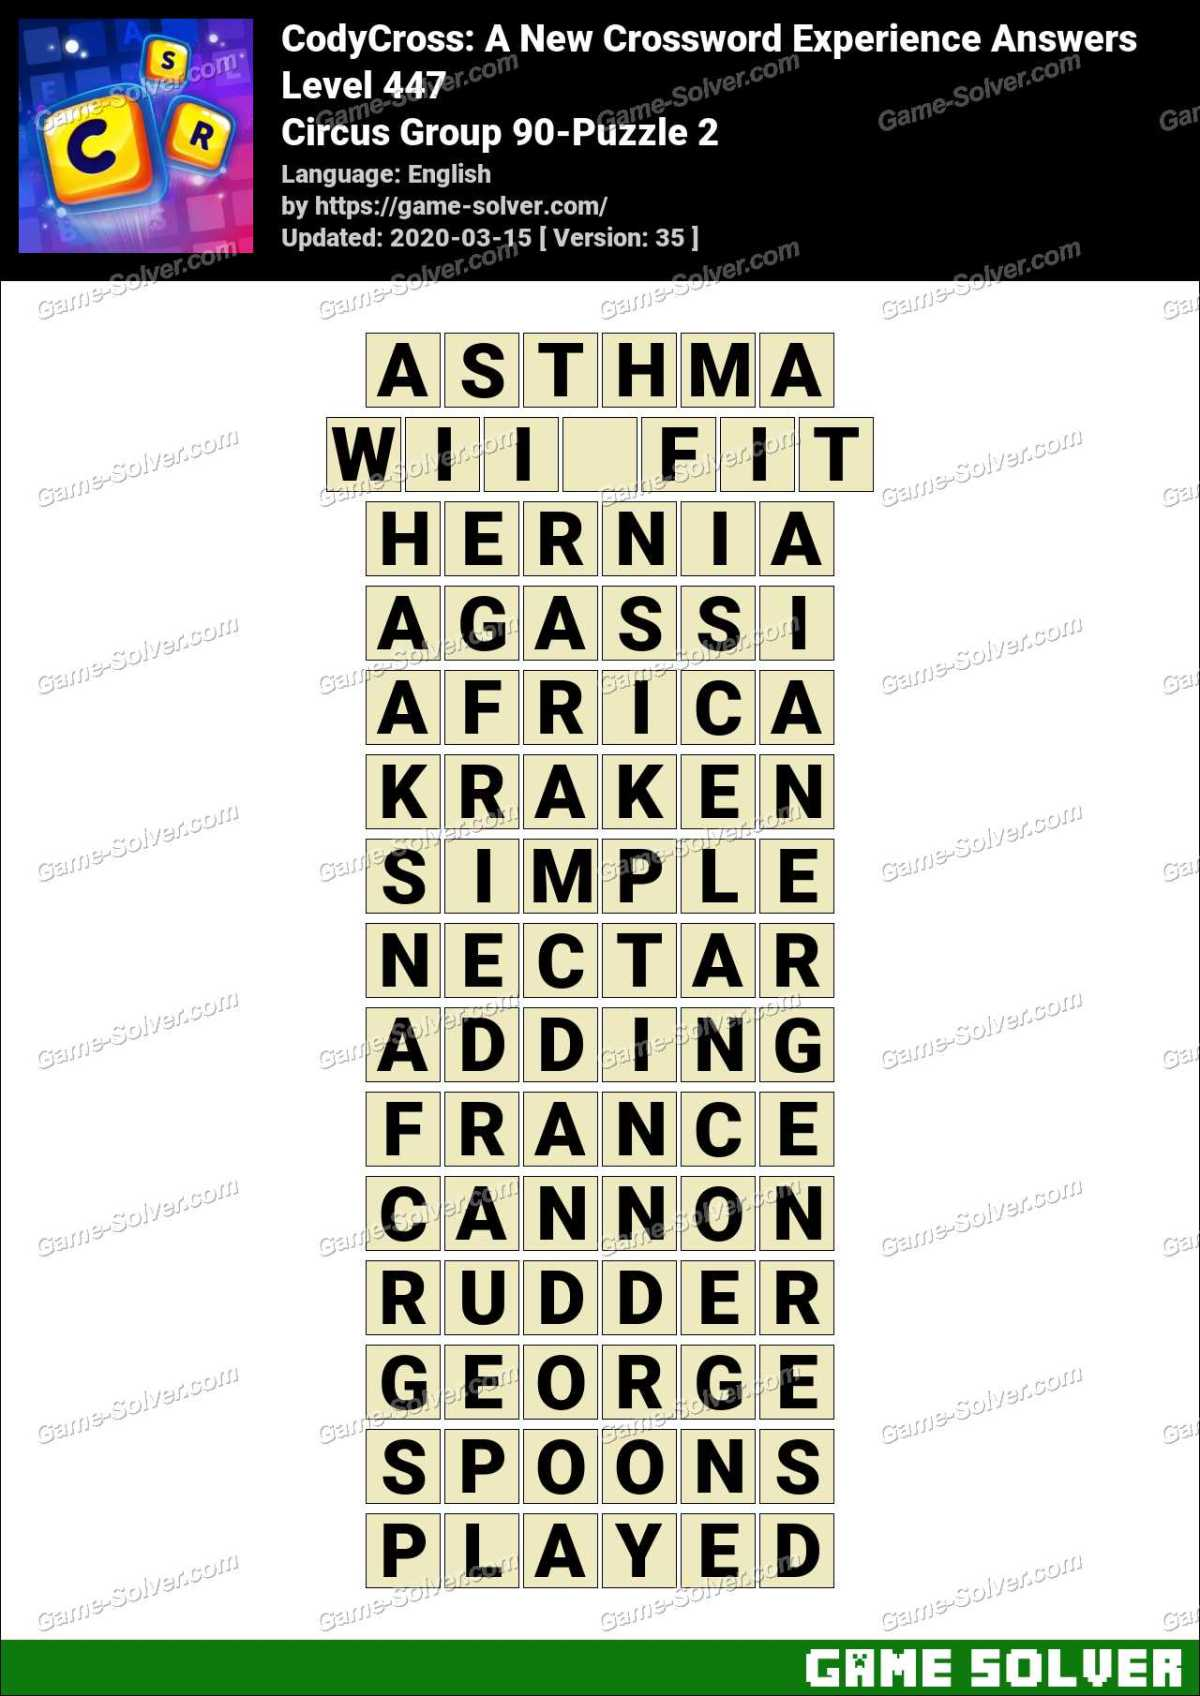 CodyCross Circus Group 90-Puzzle 2 Answers